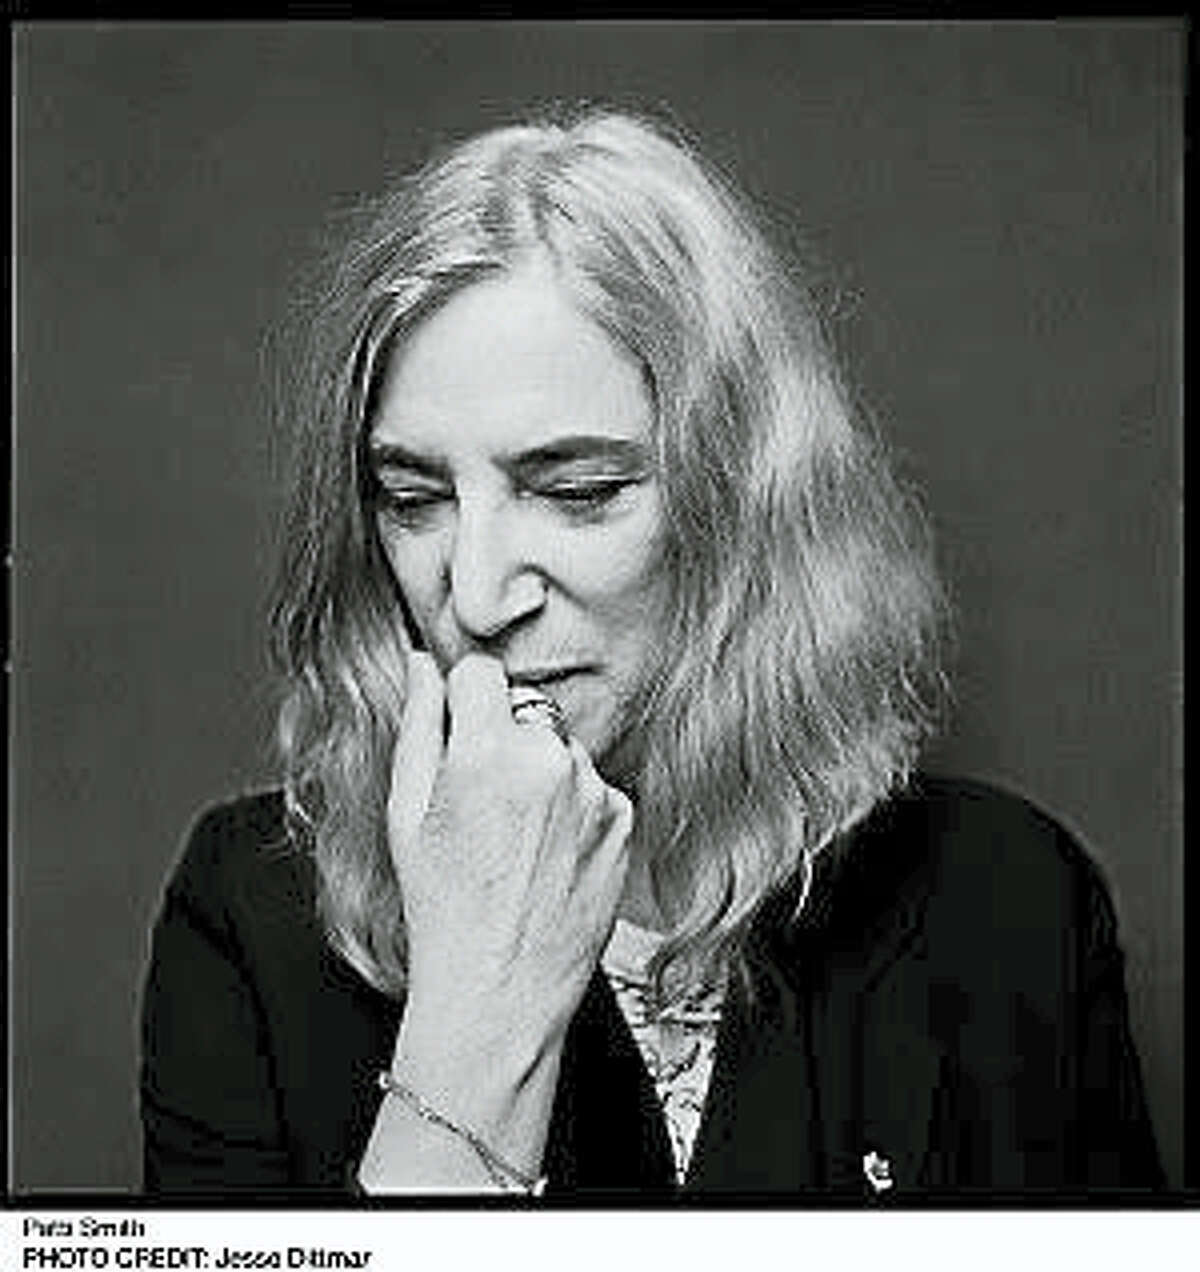 Photo by Jesse DittmarPatti Smith will discuss her latest book with Colin McEnroe at the Mark Twain House in October.